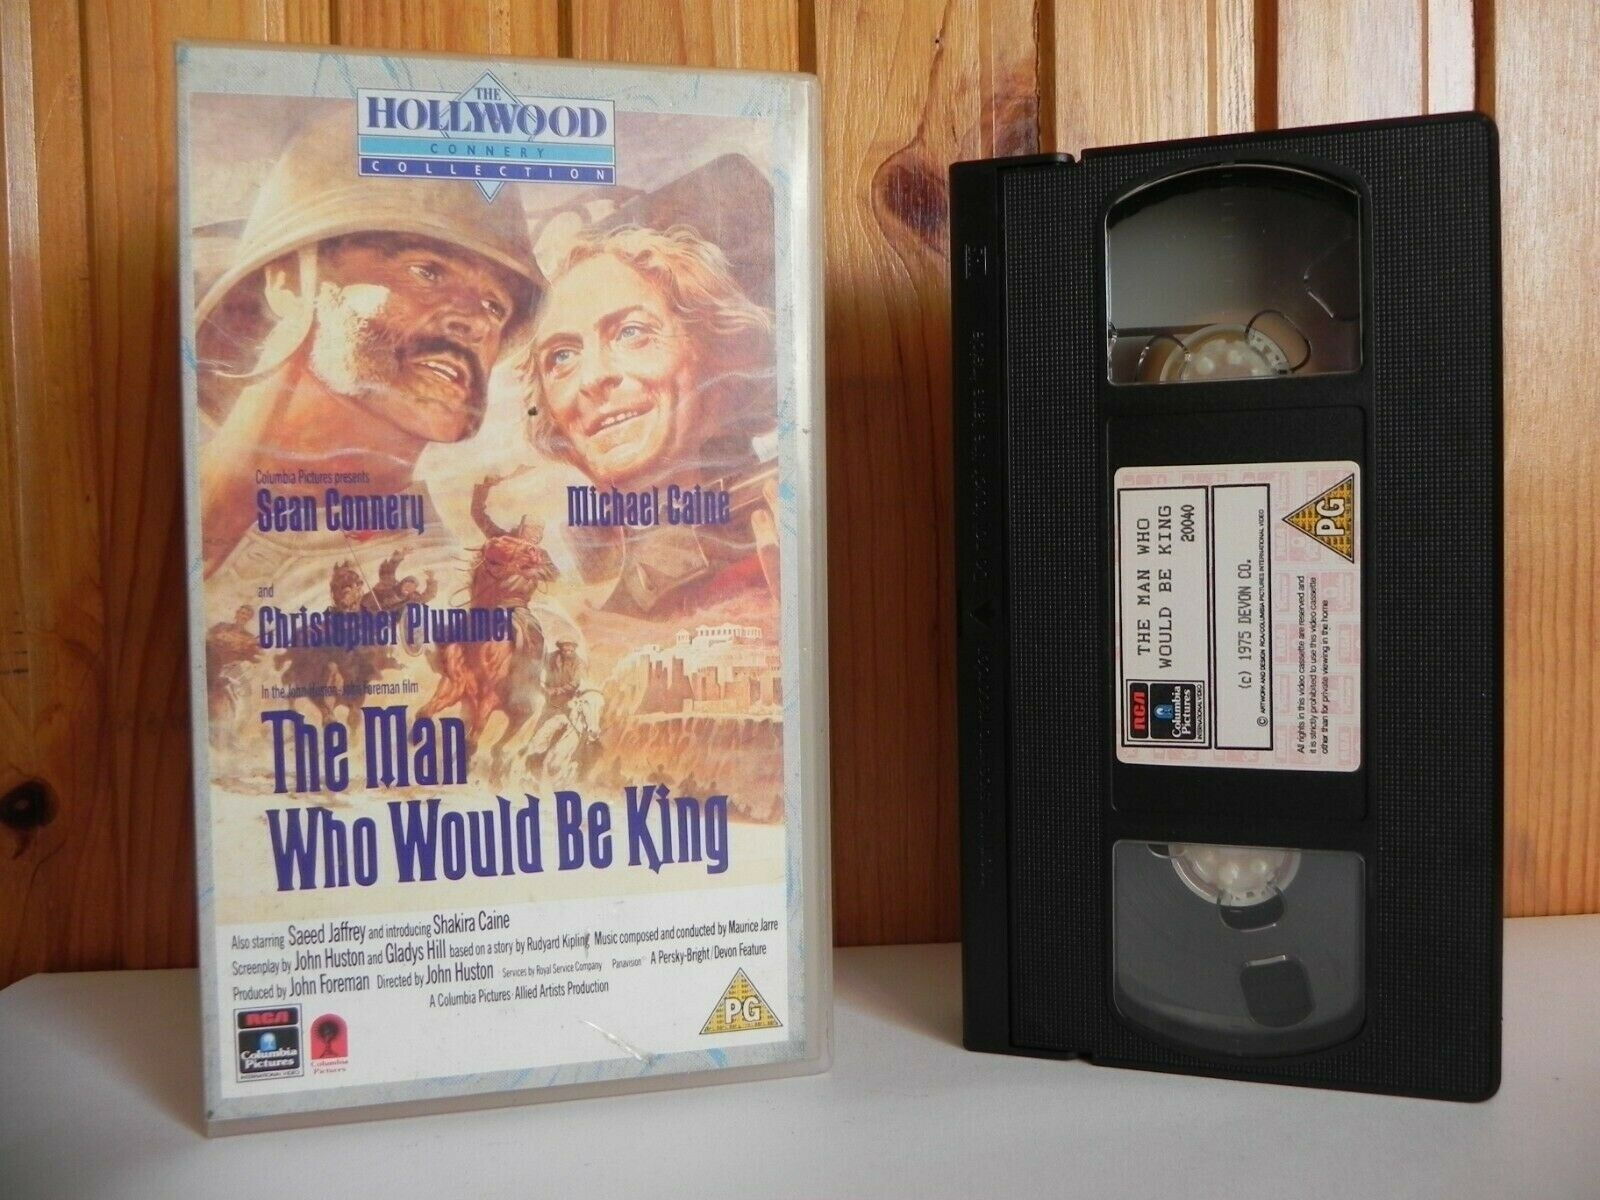 The Man Who Would Be King - Hollywood Classic - 1880's India Adventures - VHS